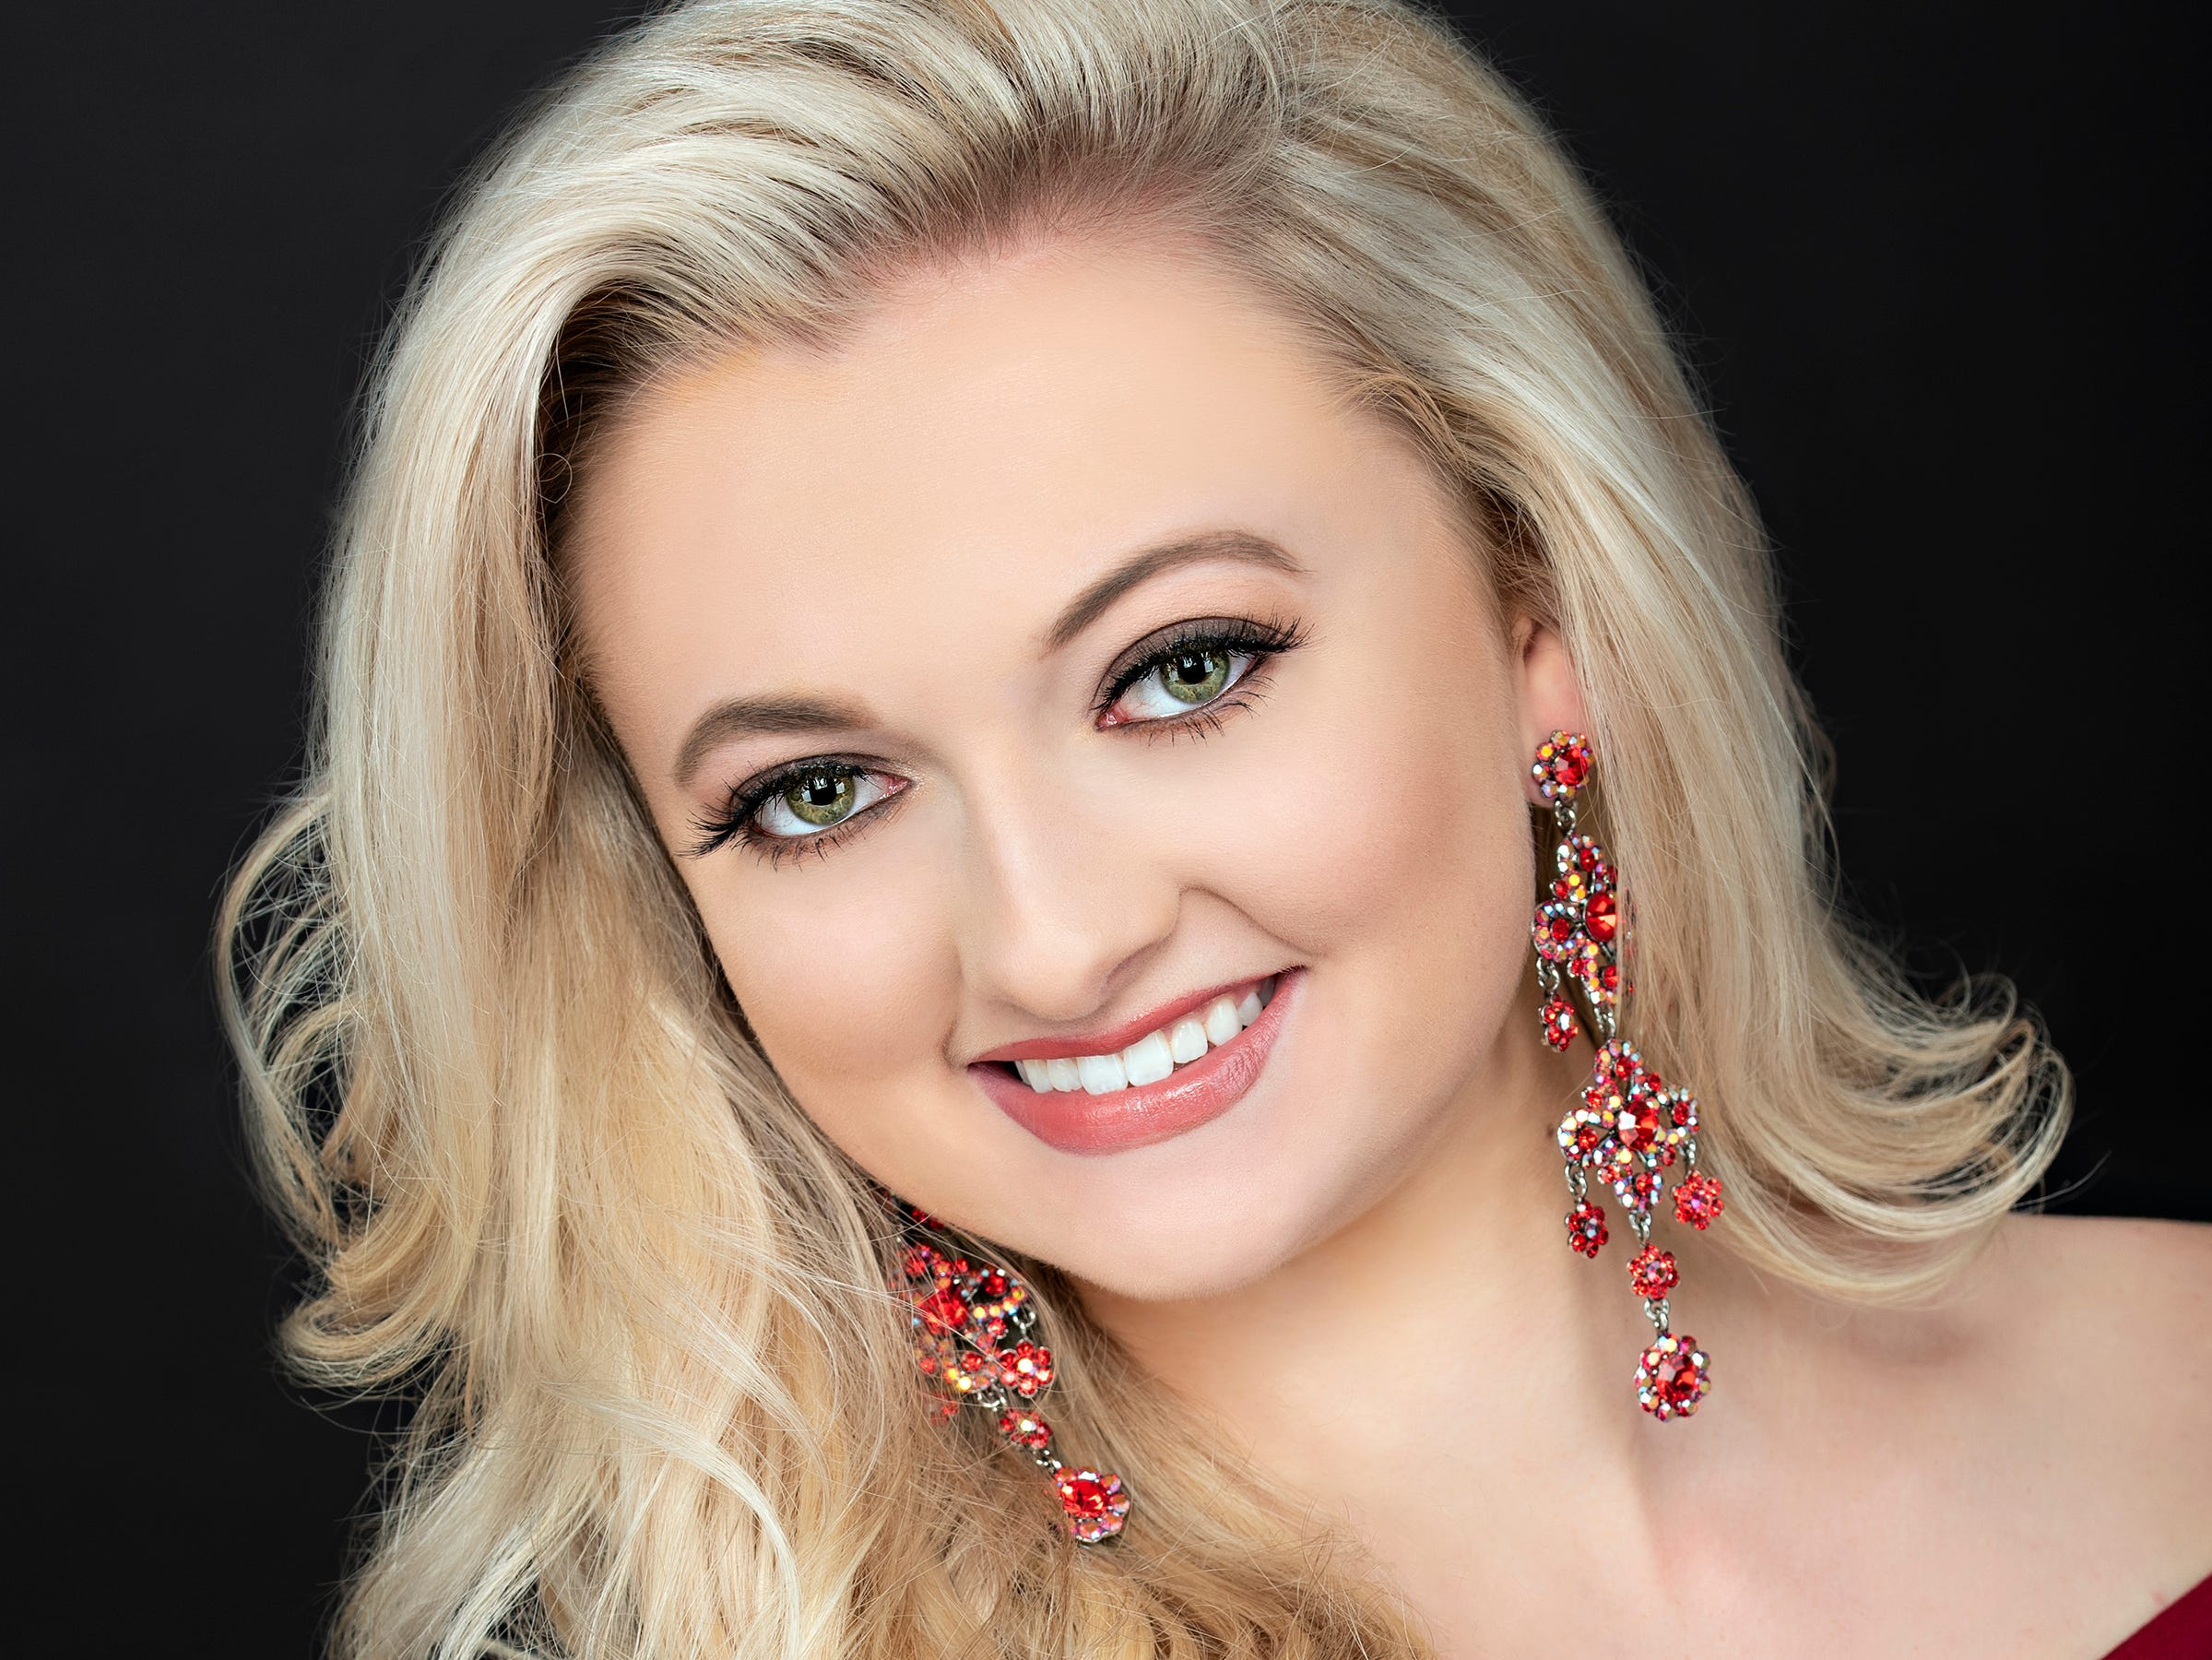 Miss Capital City Outstanding Teen Lexie McCord